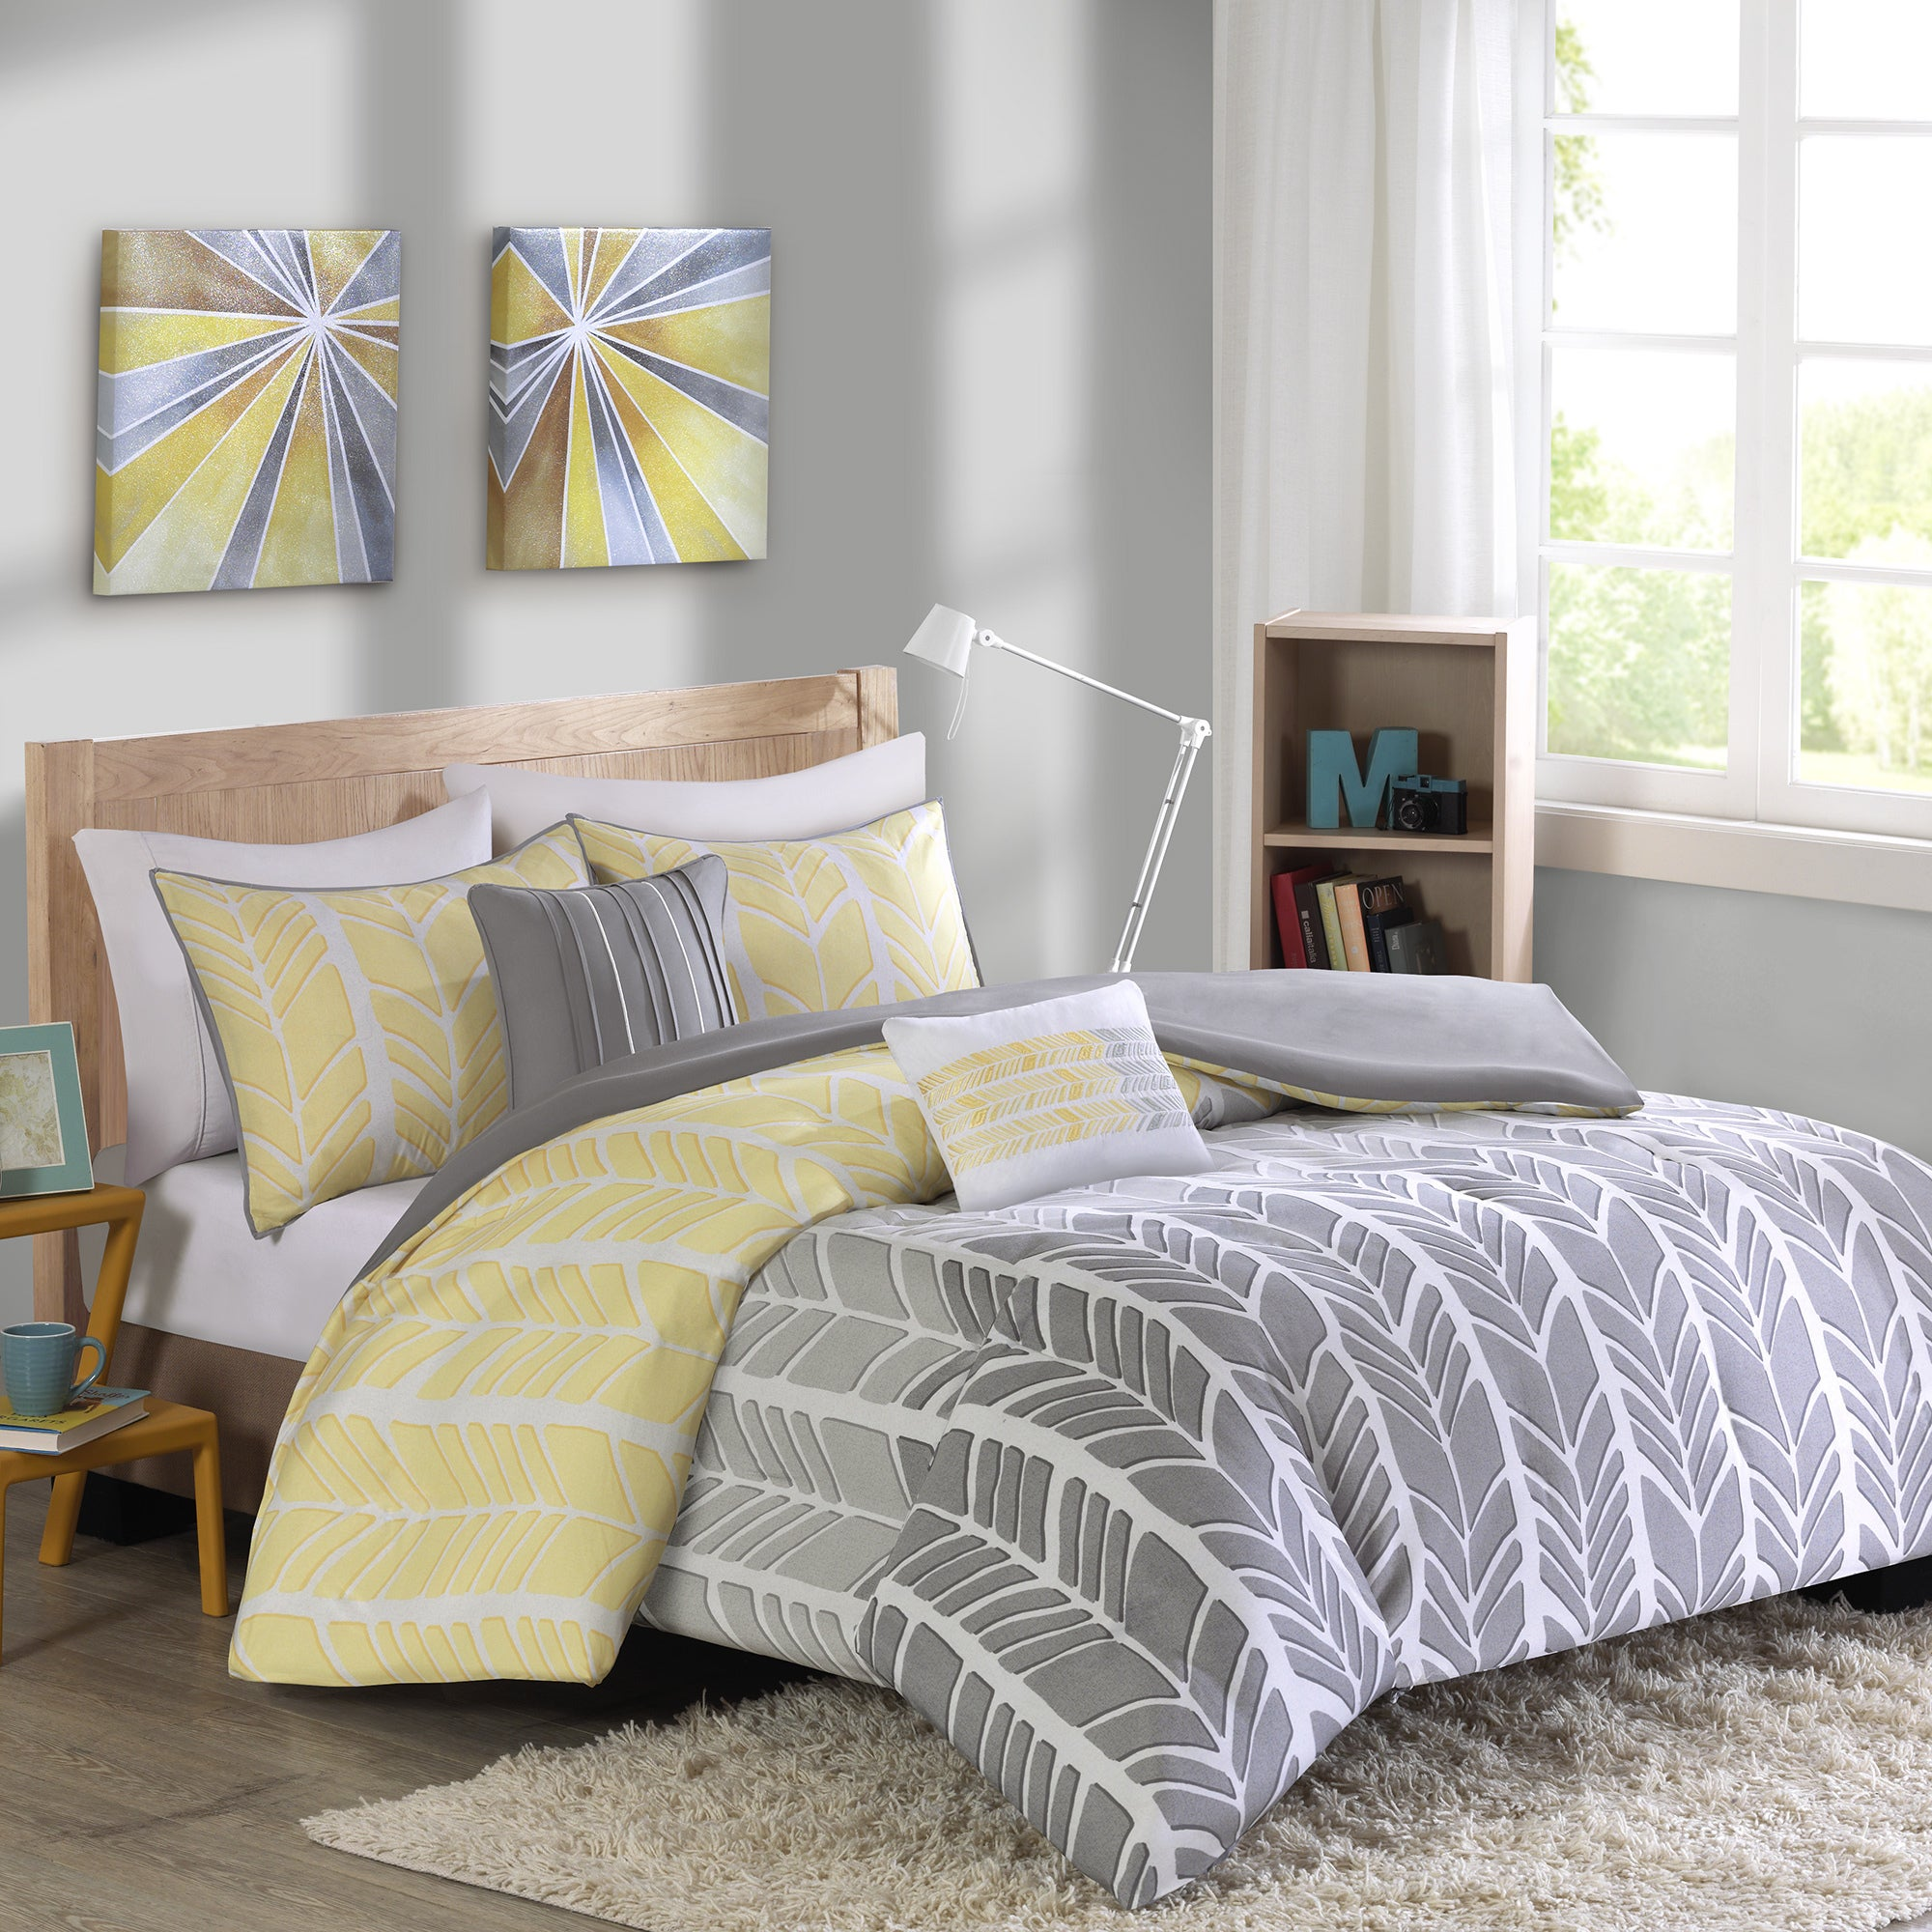 furniture navy bedroom comforter dresser decor yellow ideas gray decorating and